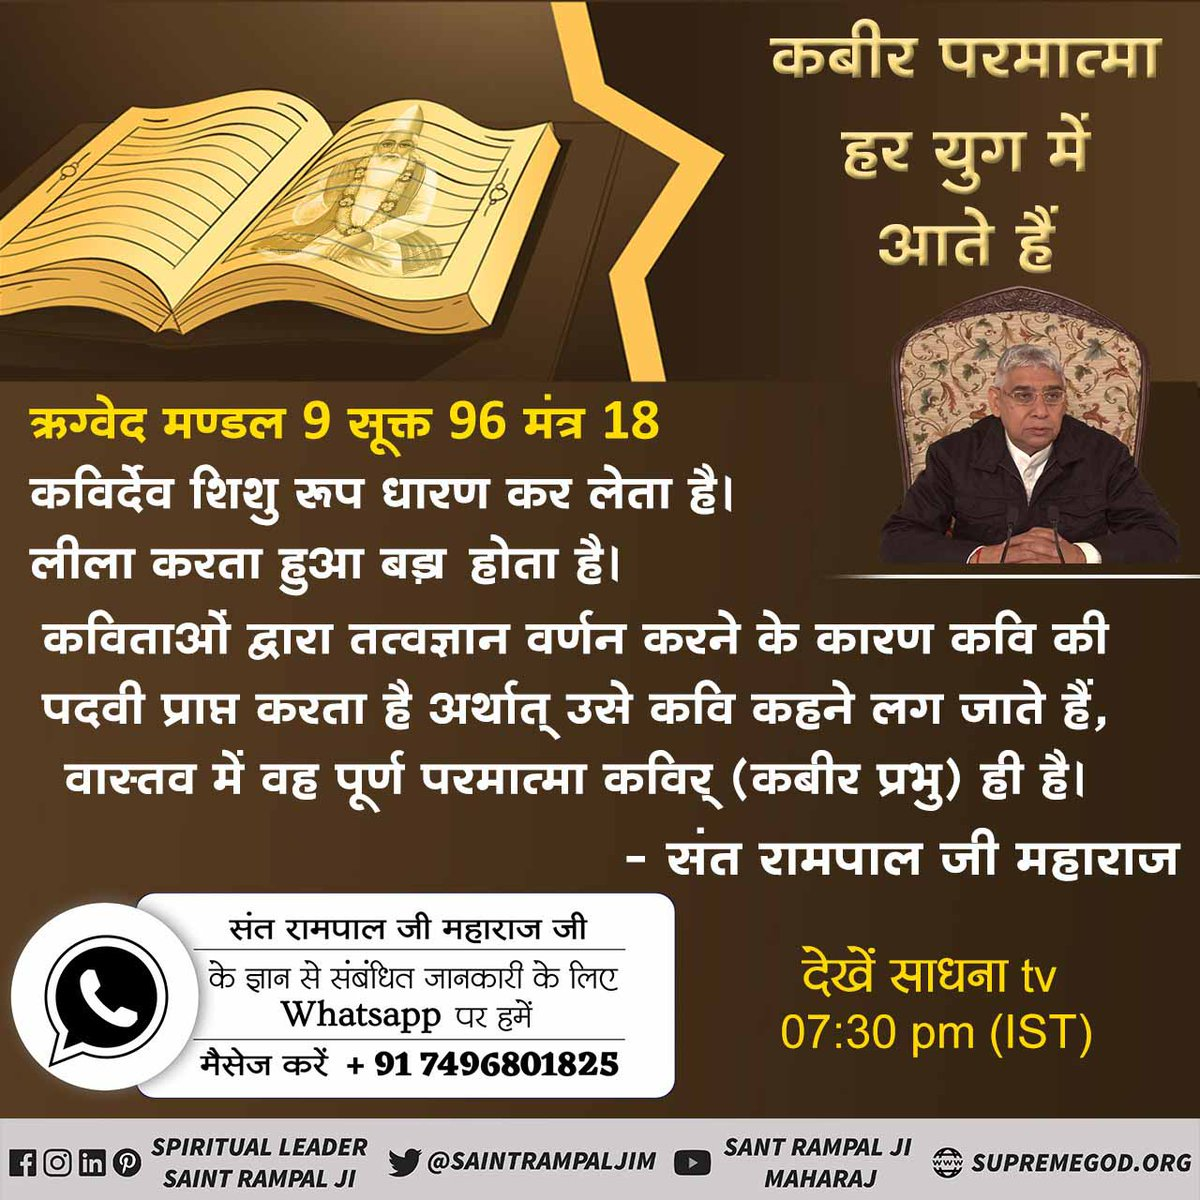 Replying to @lalitakhandel12: #SupremeGodKabir hai. अधिक जानकारी के लिए Sant Rampal Ji Maharaj Youtube Channel पर Visit करें।